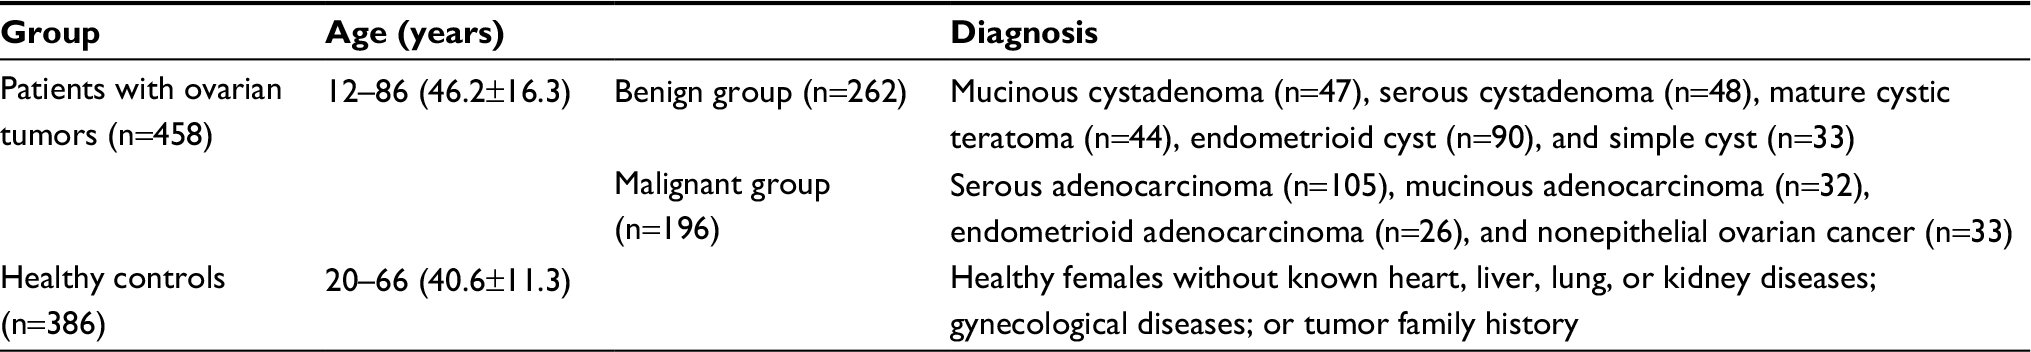 Ovarian cancer tumor marker, Clinical risk profile associated with ovarian cancer